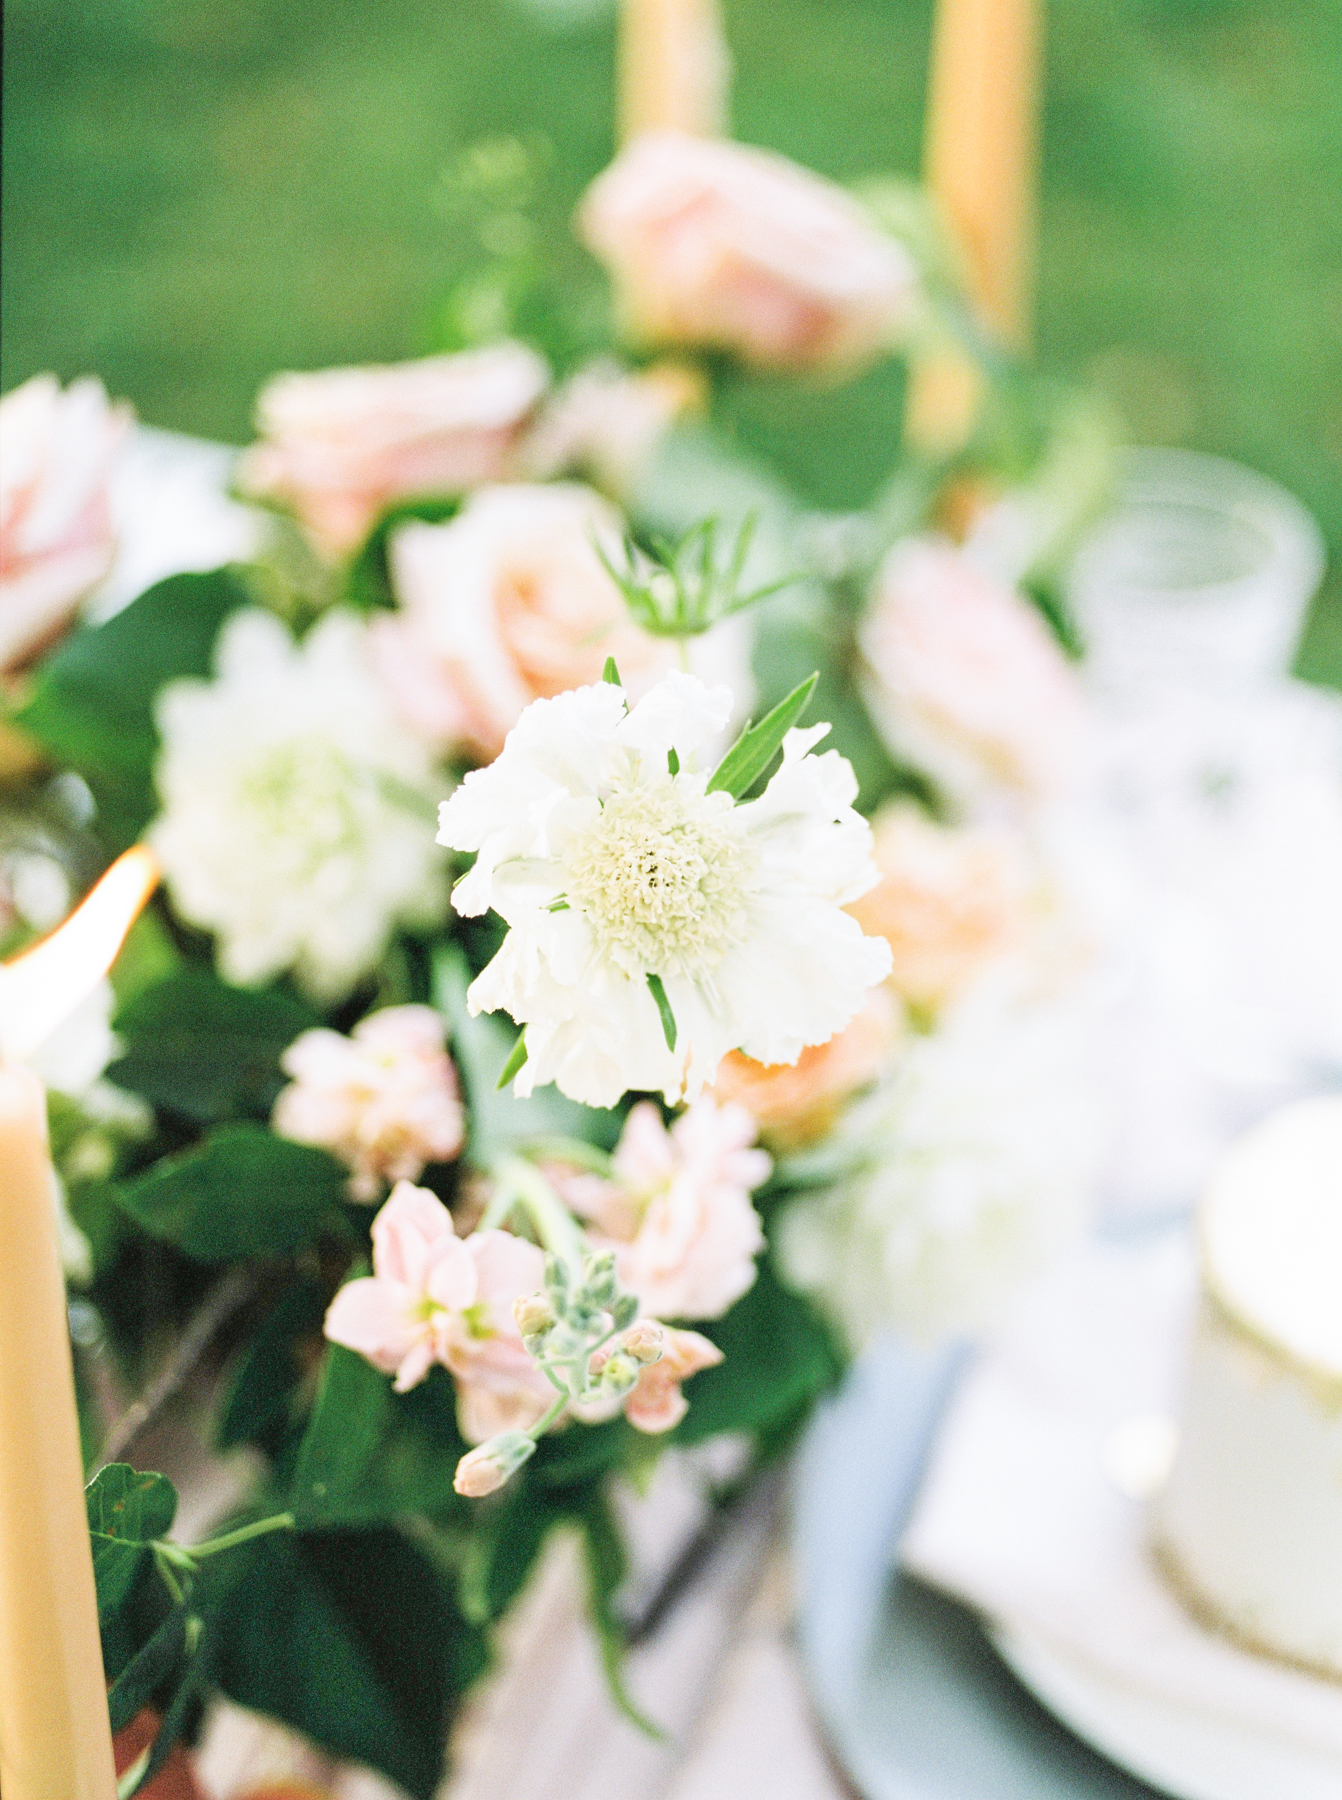 floral wedding centrepiece inspiration